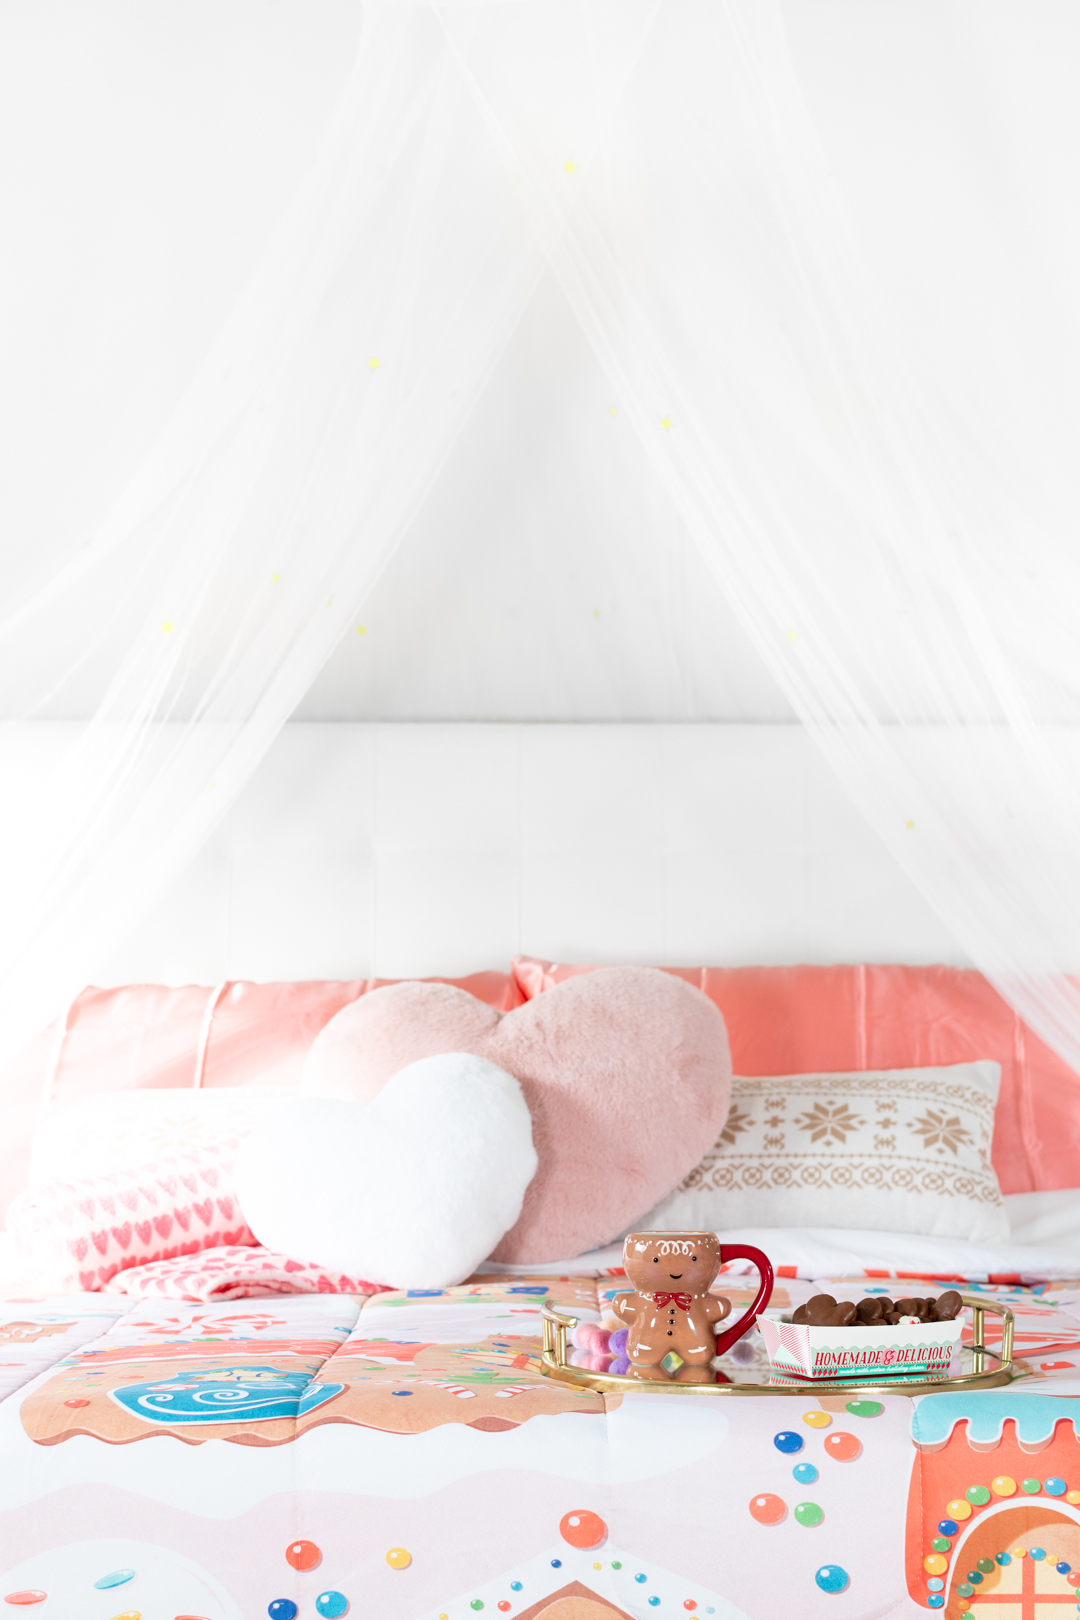 cozy christmas bedroom setup with heart-shaped pillows, gingerbread blankets and pretty tent.